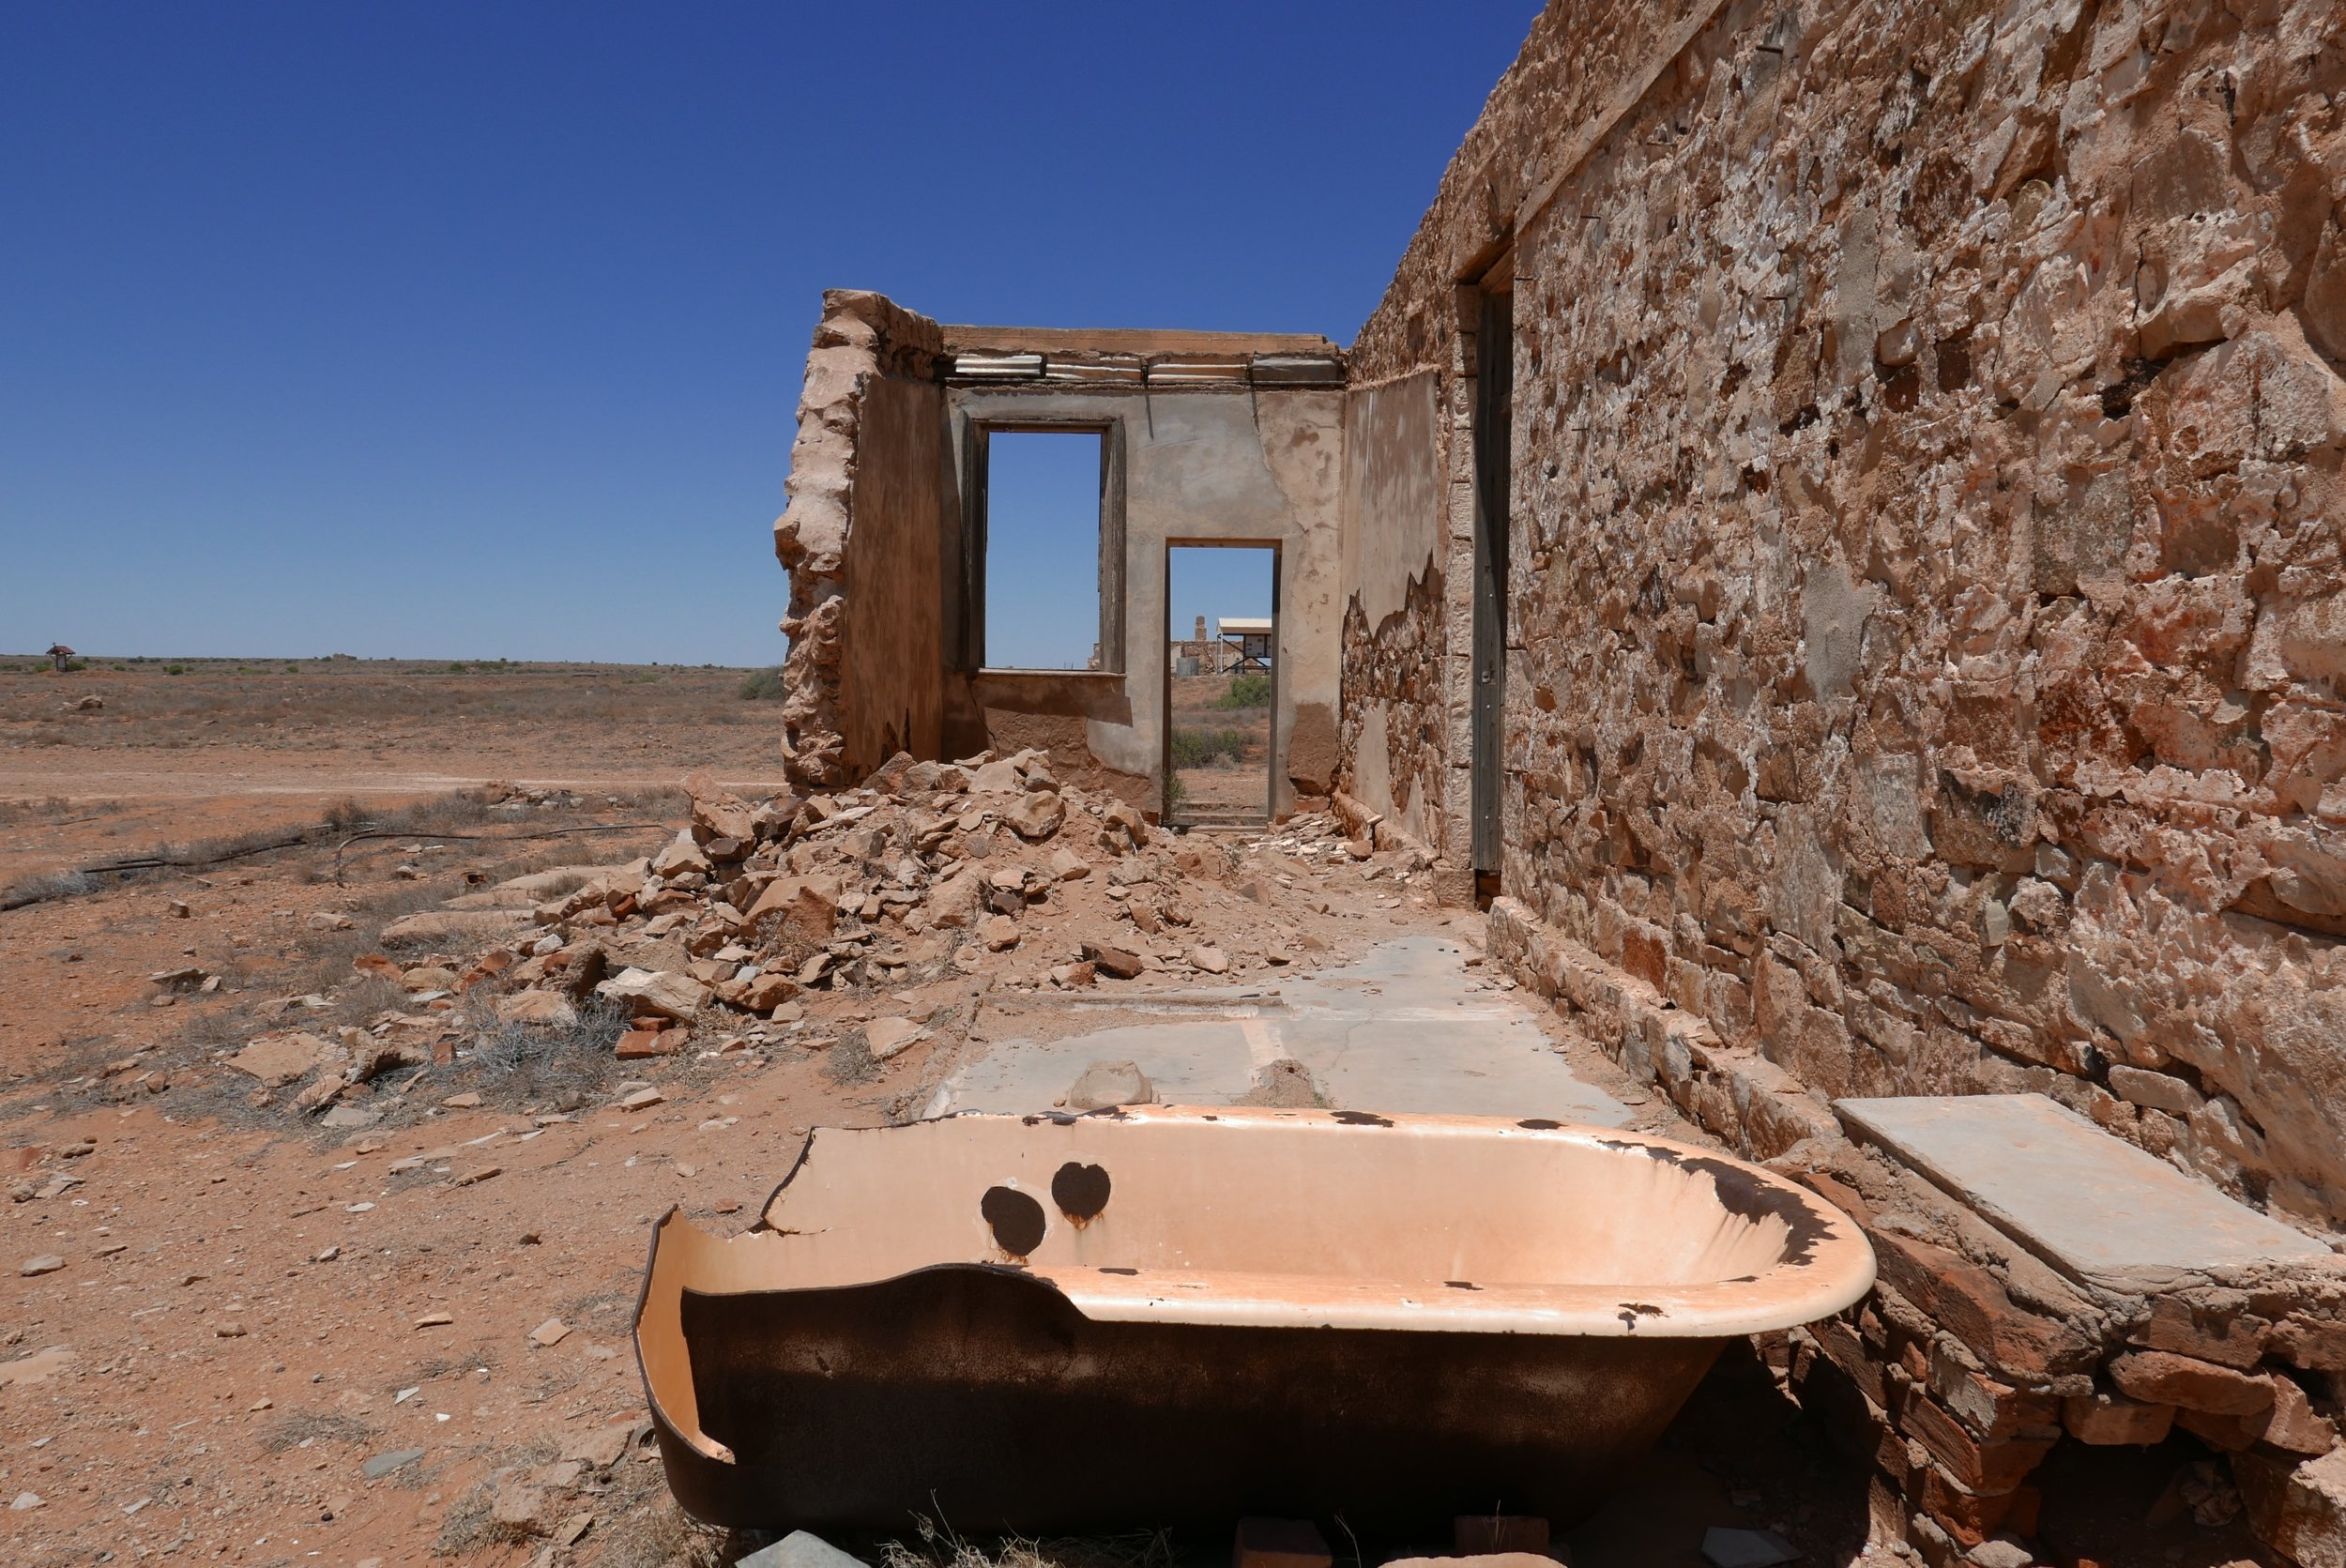 Signs of a former life. What a luxury this bath must been back in those days. A room that was once a private space is now fully exposed and forms an interesting architectural juxtaposition in this desert landscape.